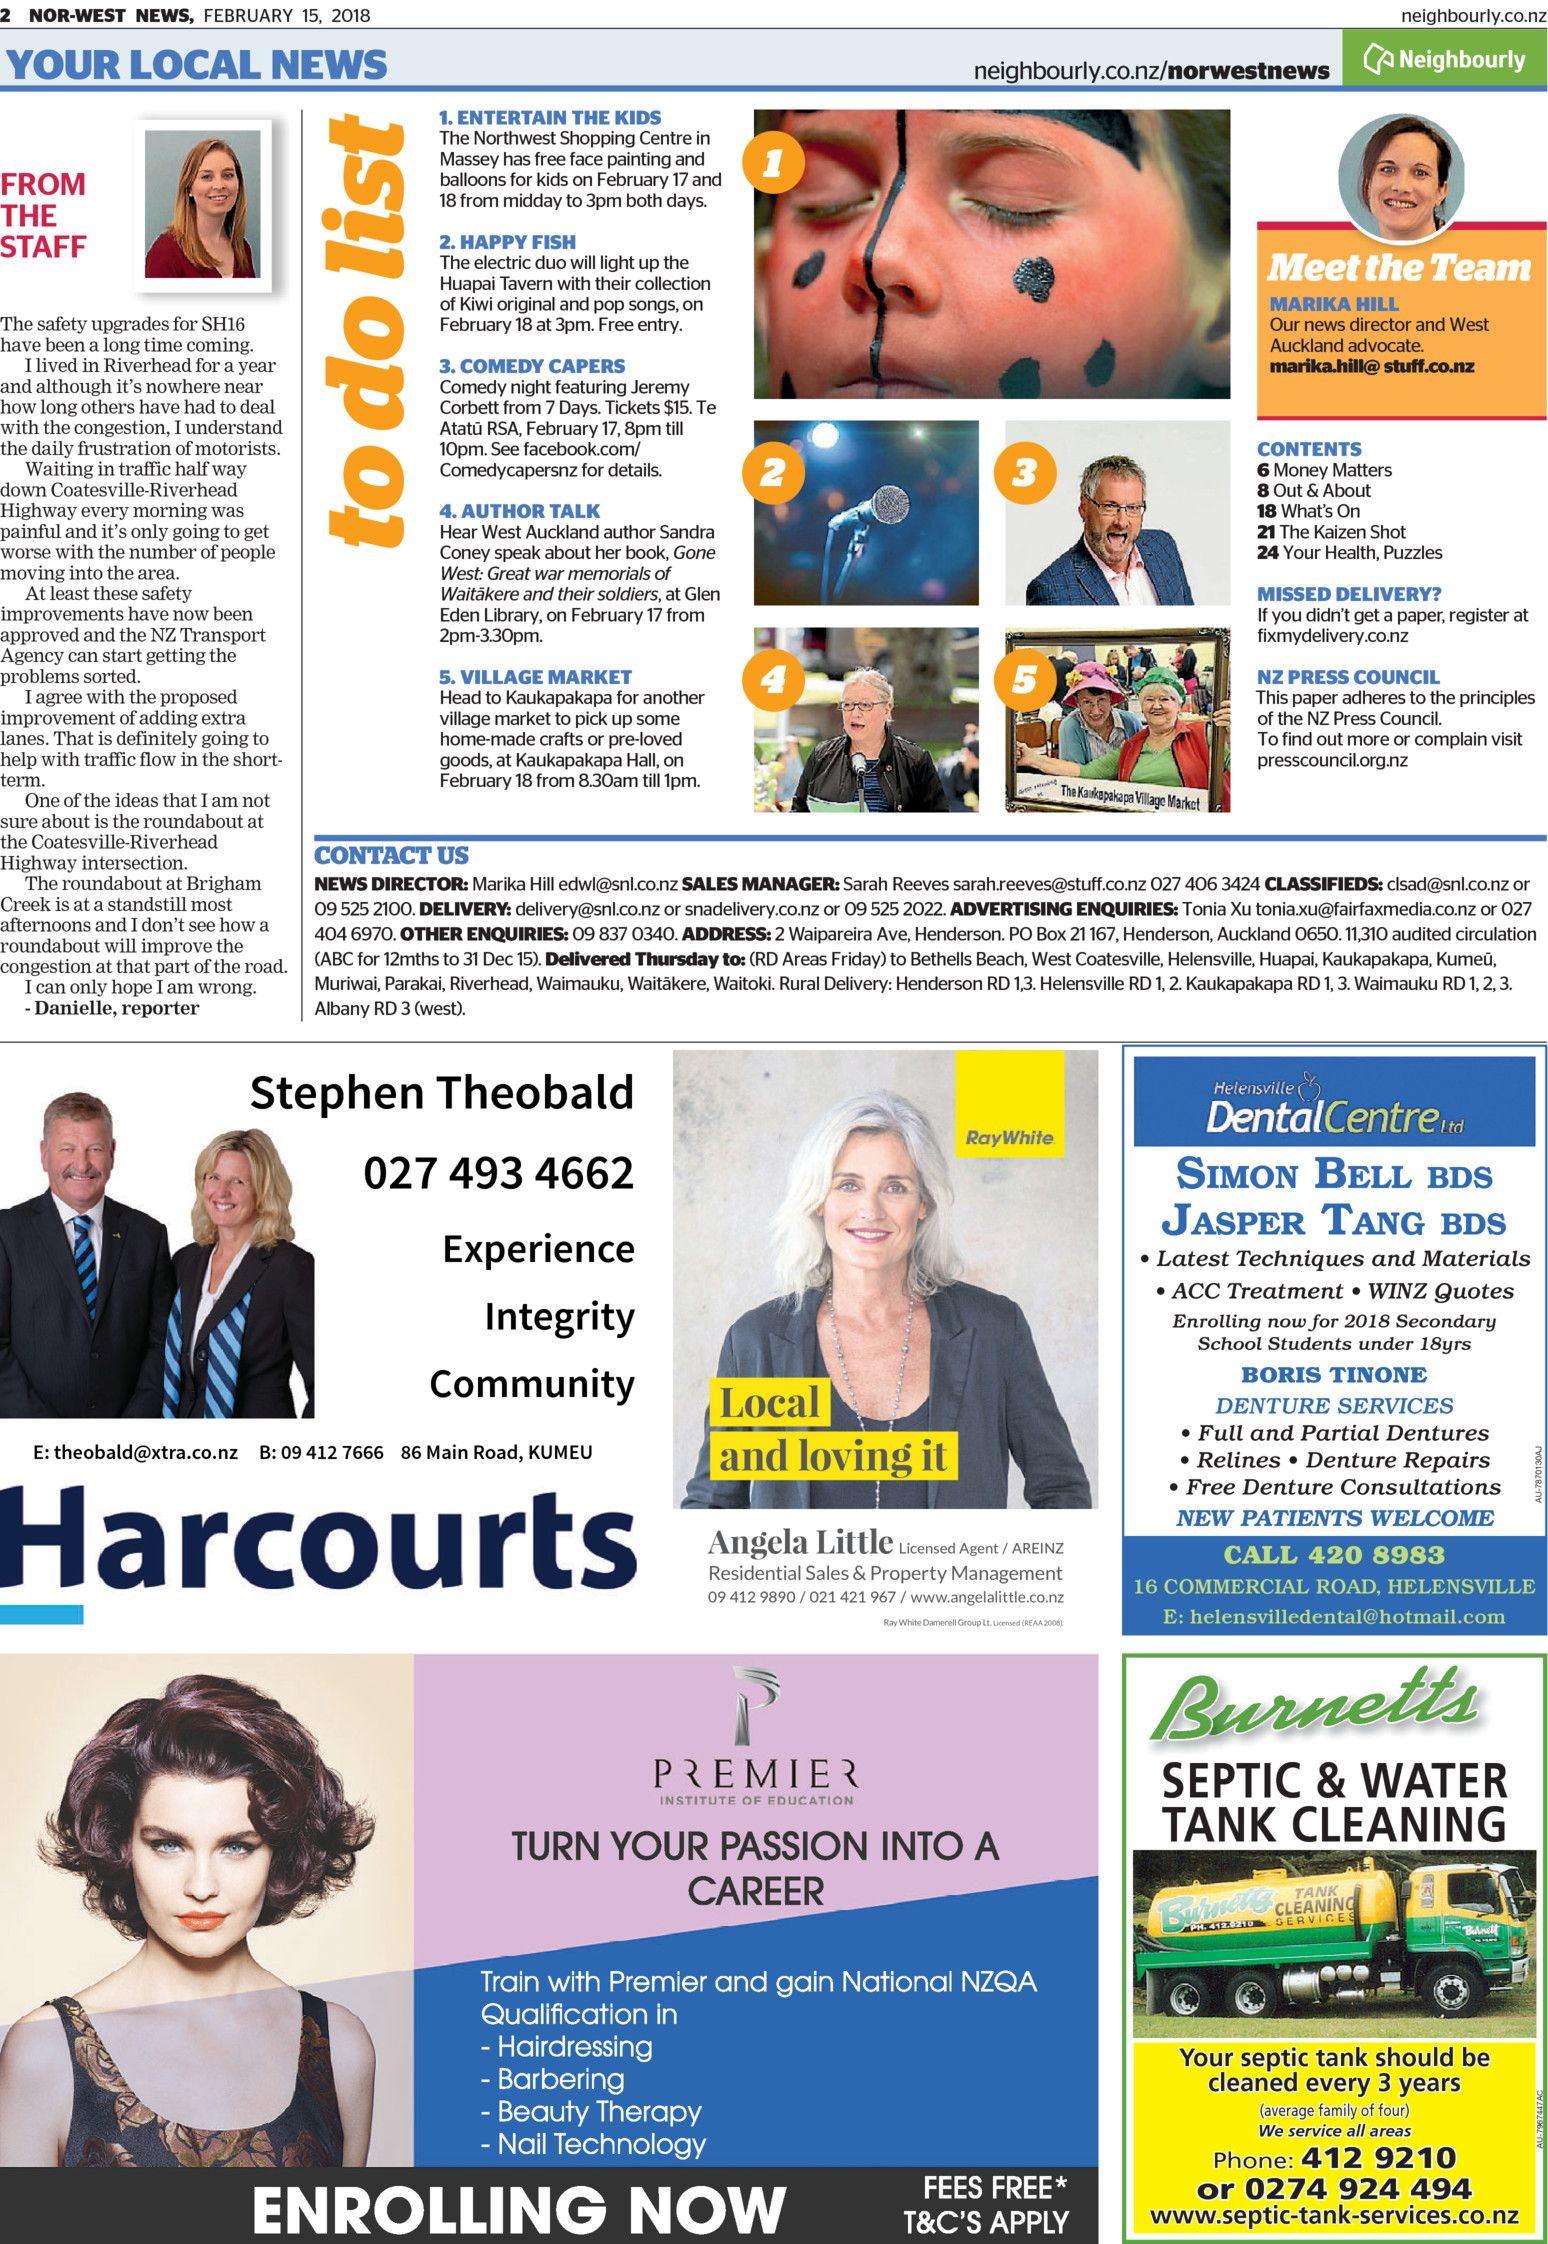 Nor-west News - Read online on Neighbourly